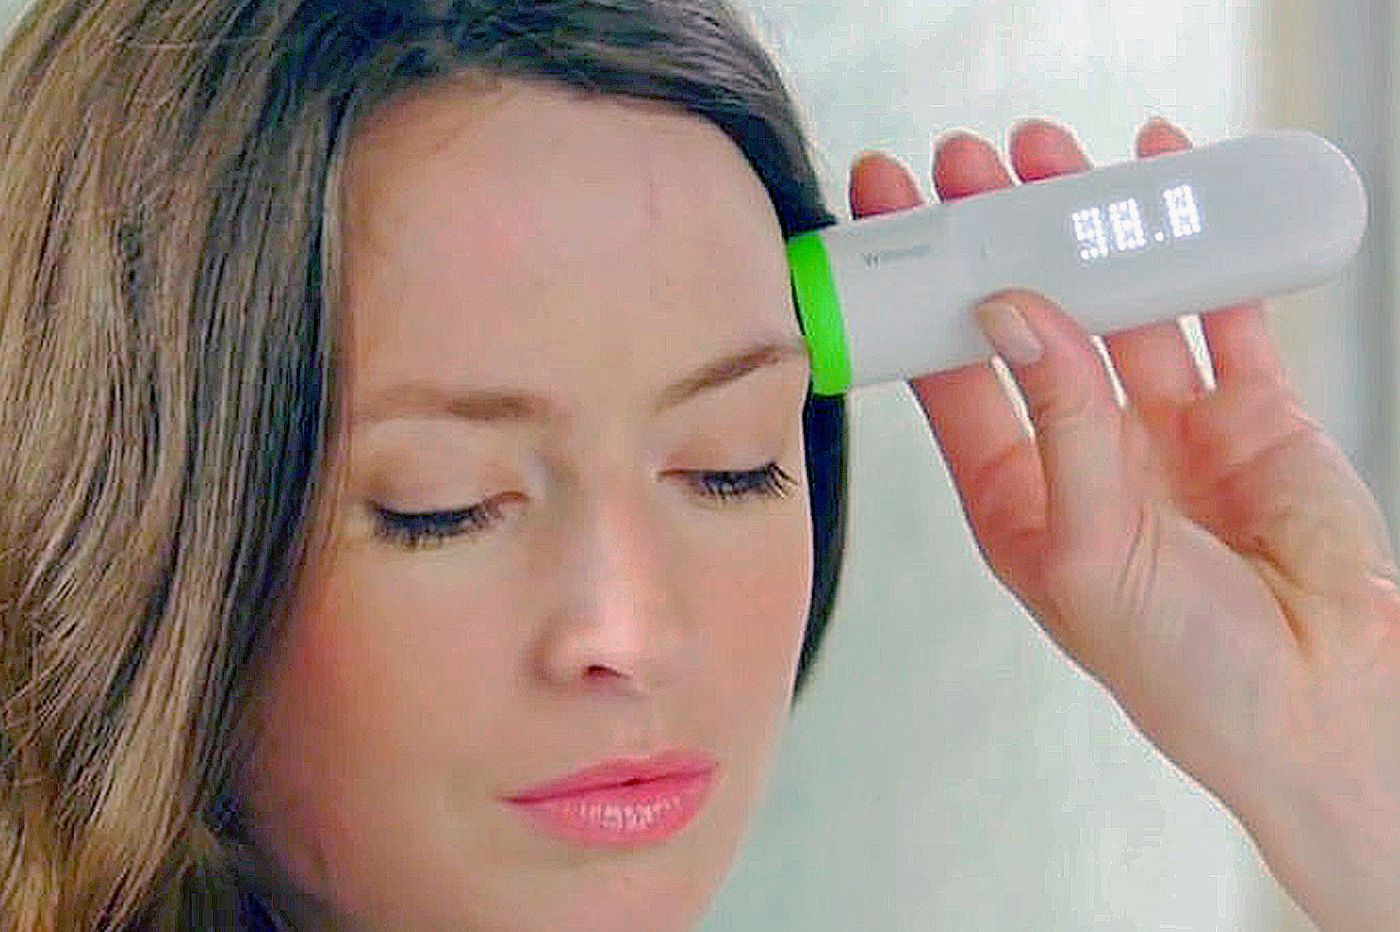 Travel Gear: Withings Thermo Smart Temporal Thermometer